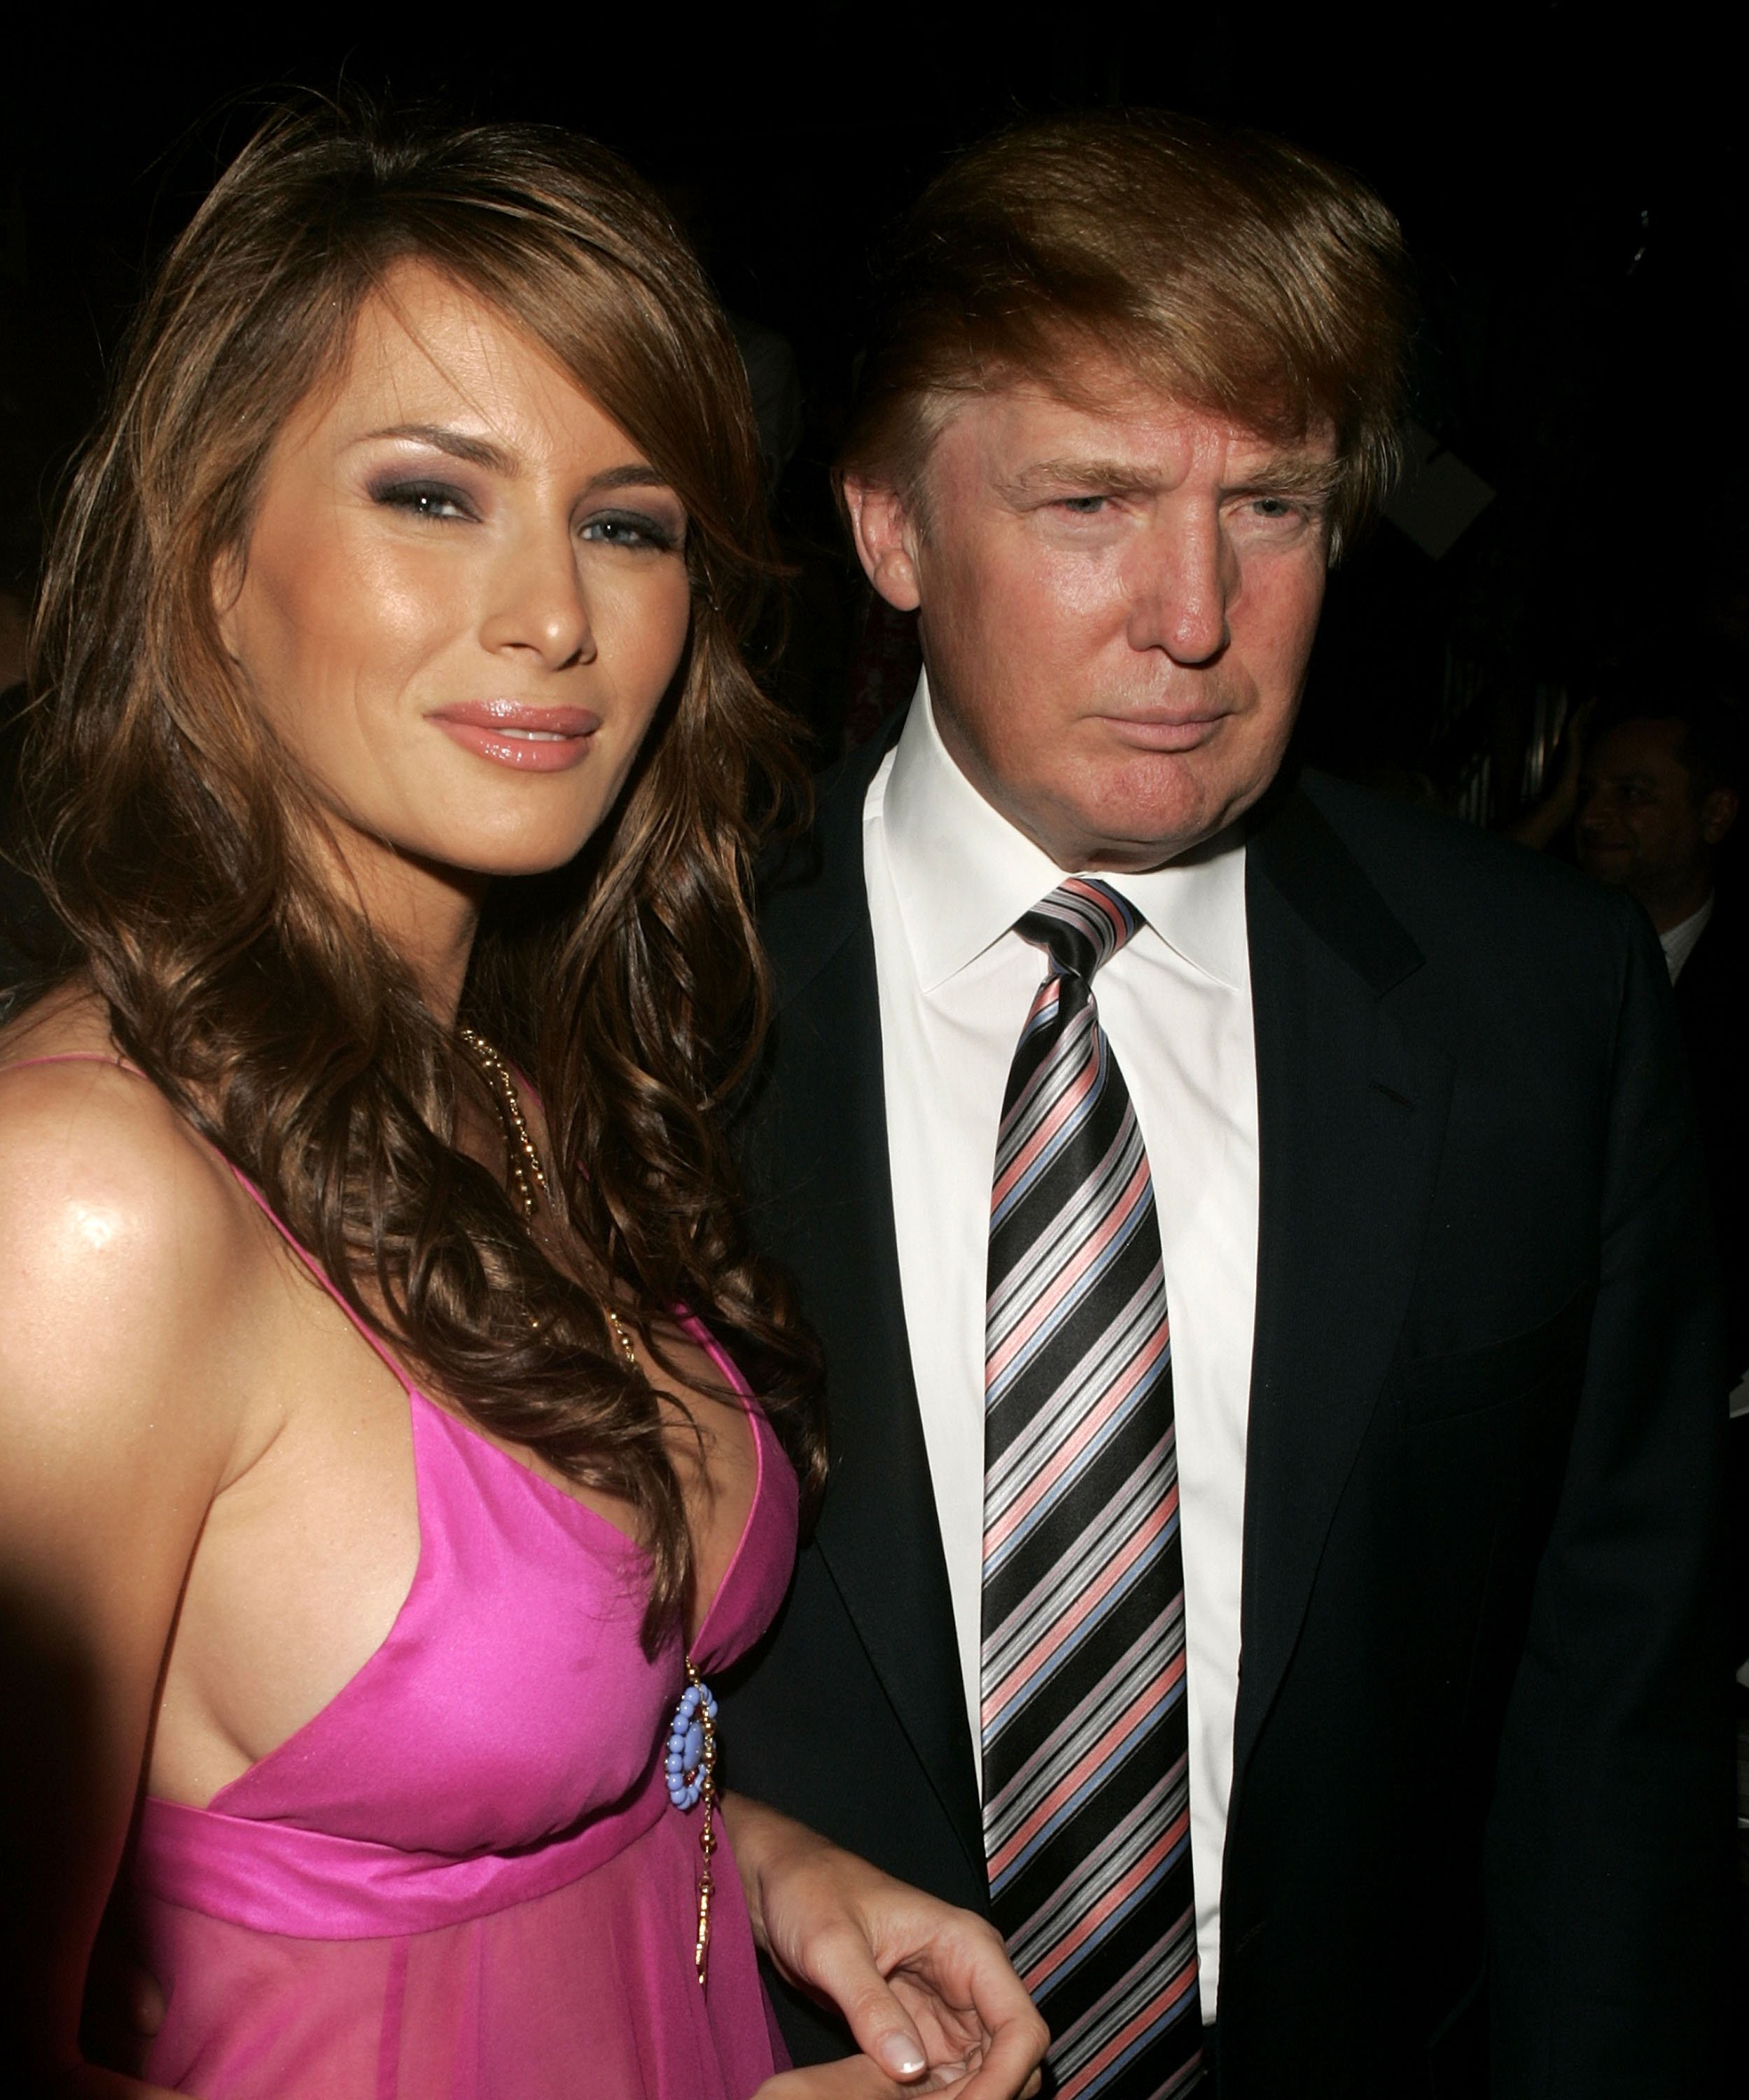 President Donald Trump and Melania Trump before becoming the first couple   Photo: Getty Images